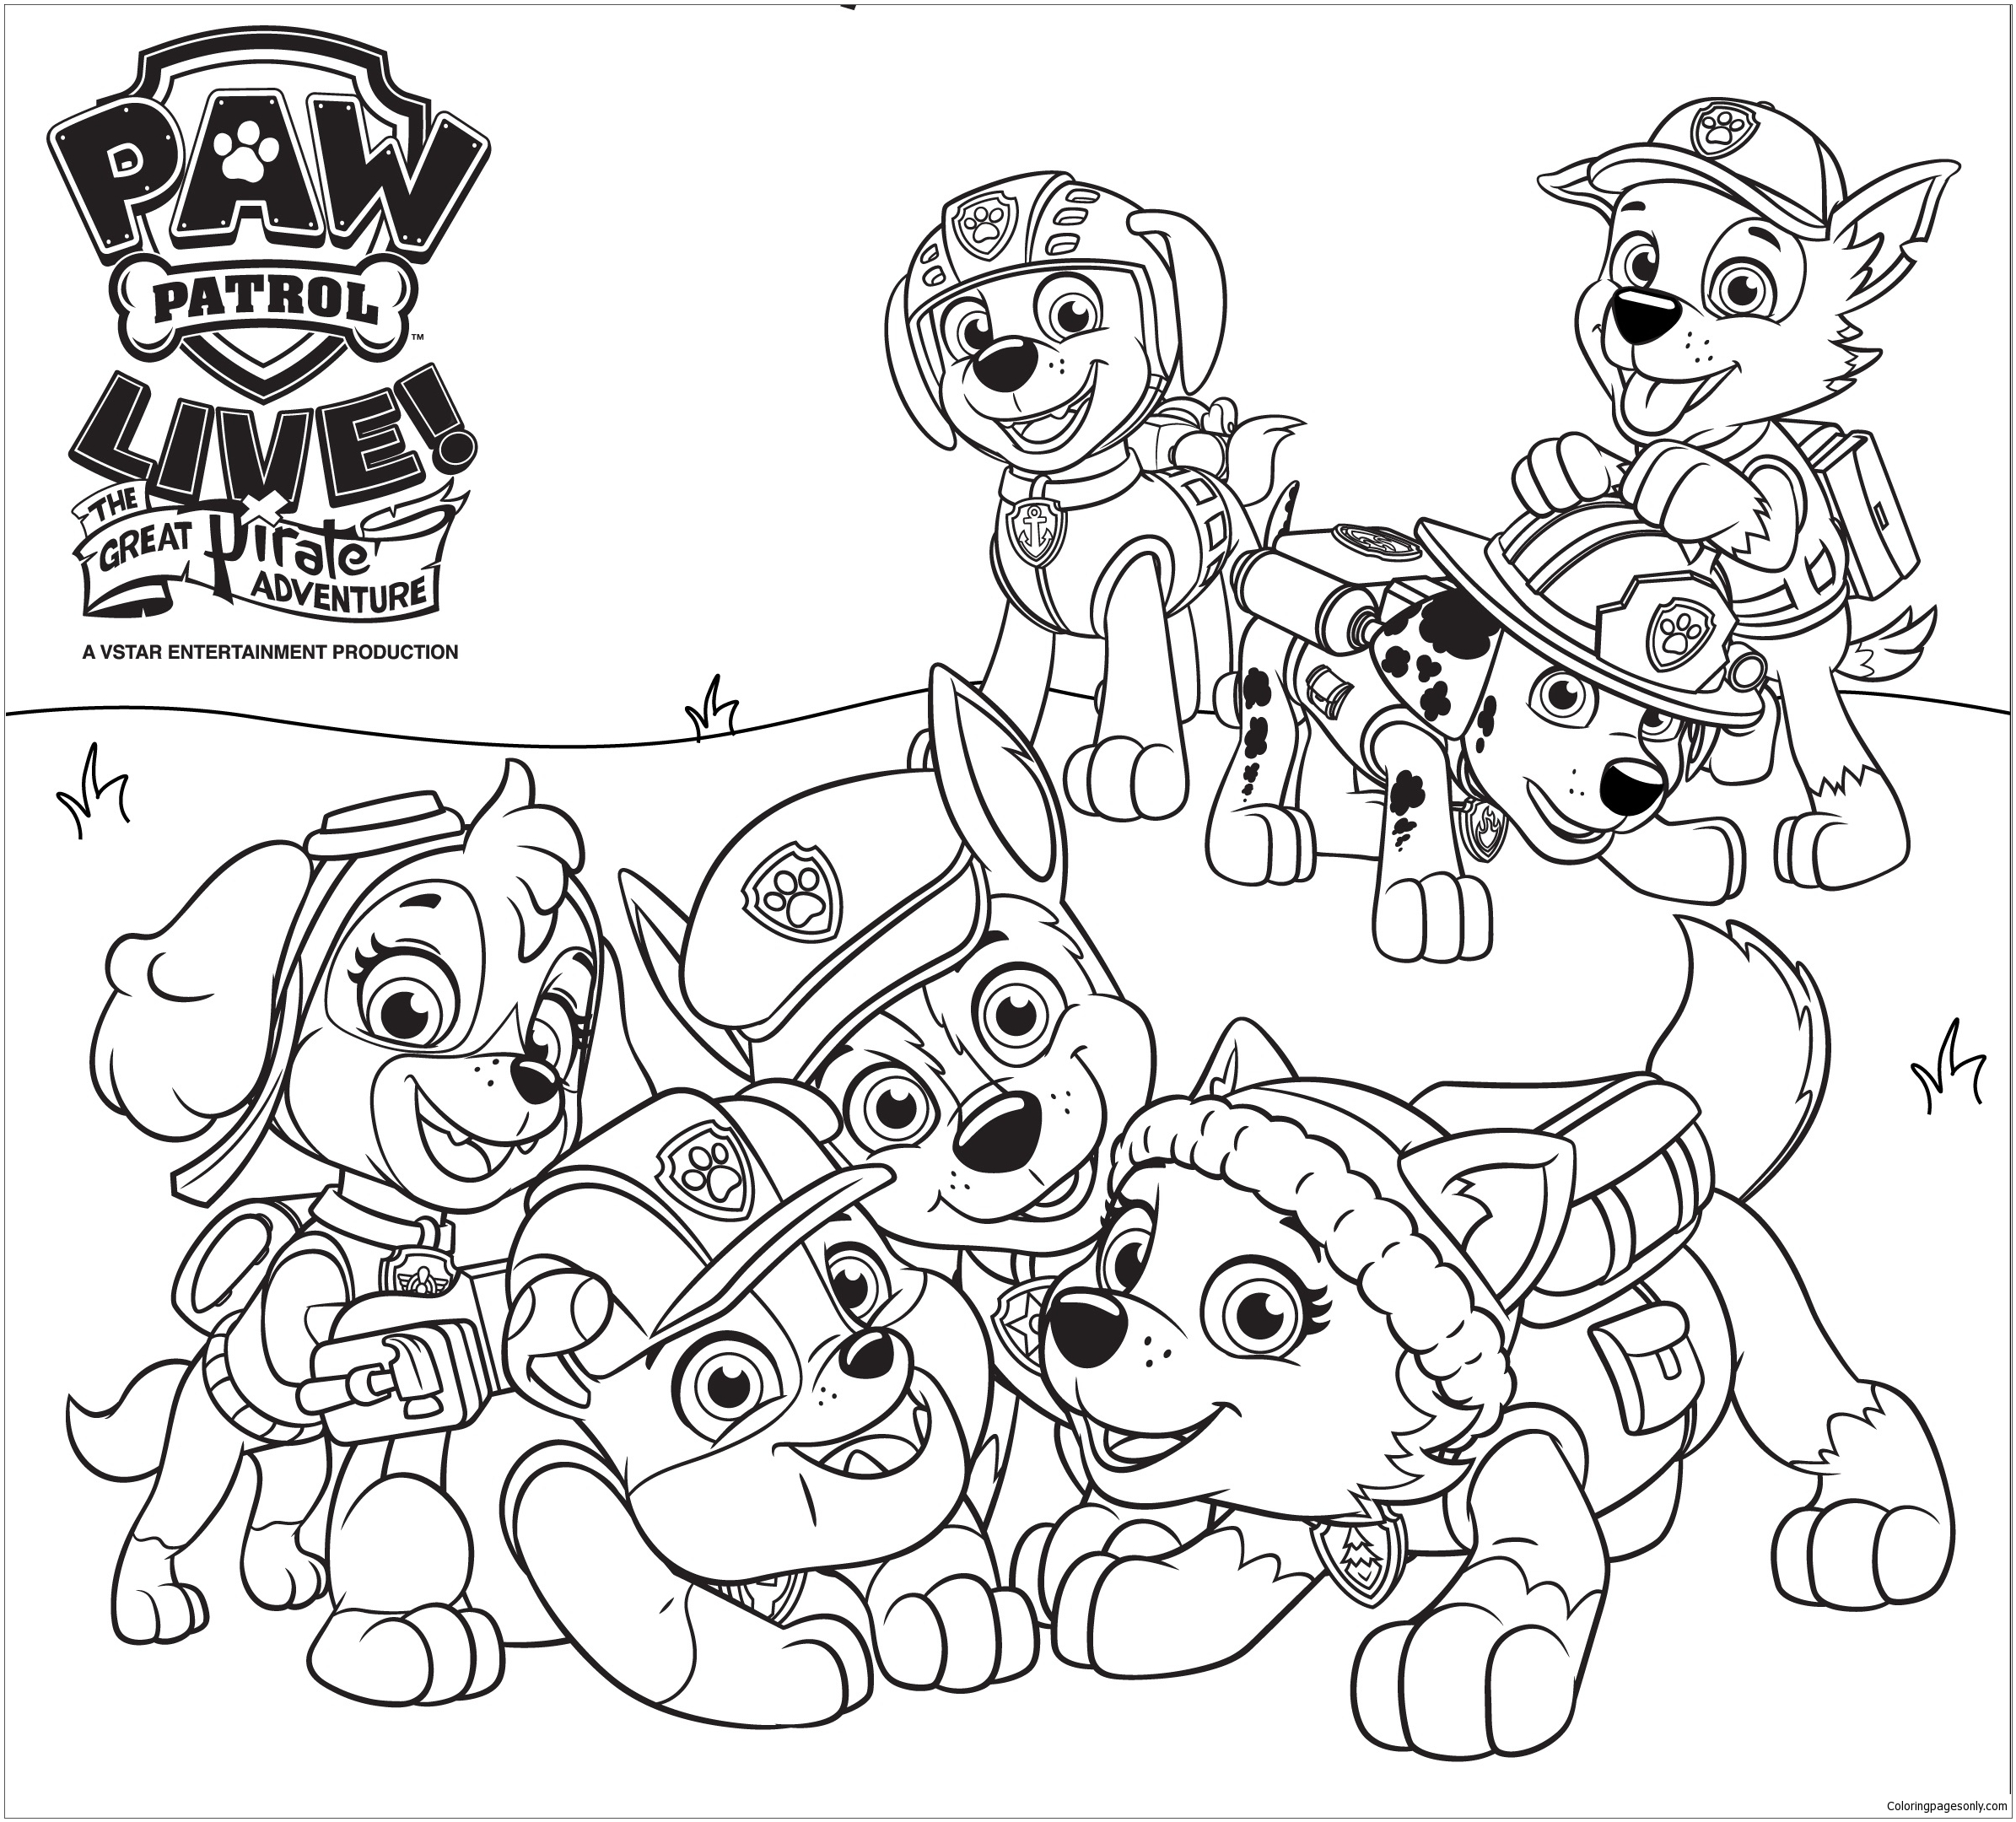 paw patrol 45 coloring page free coloring pages